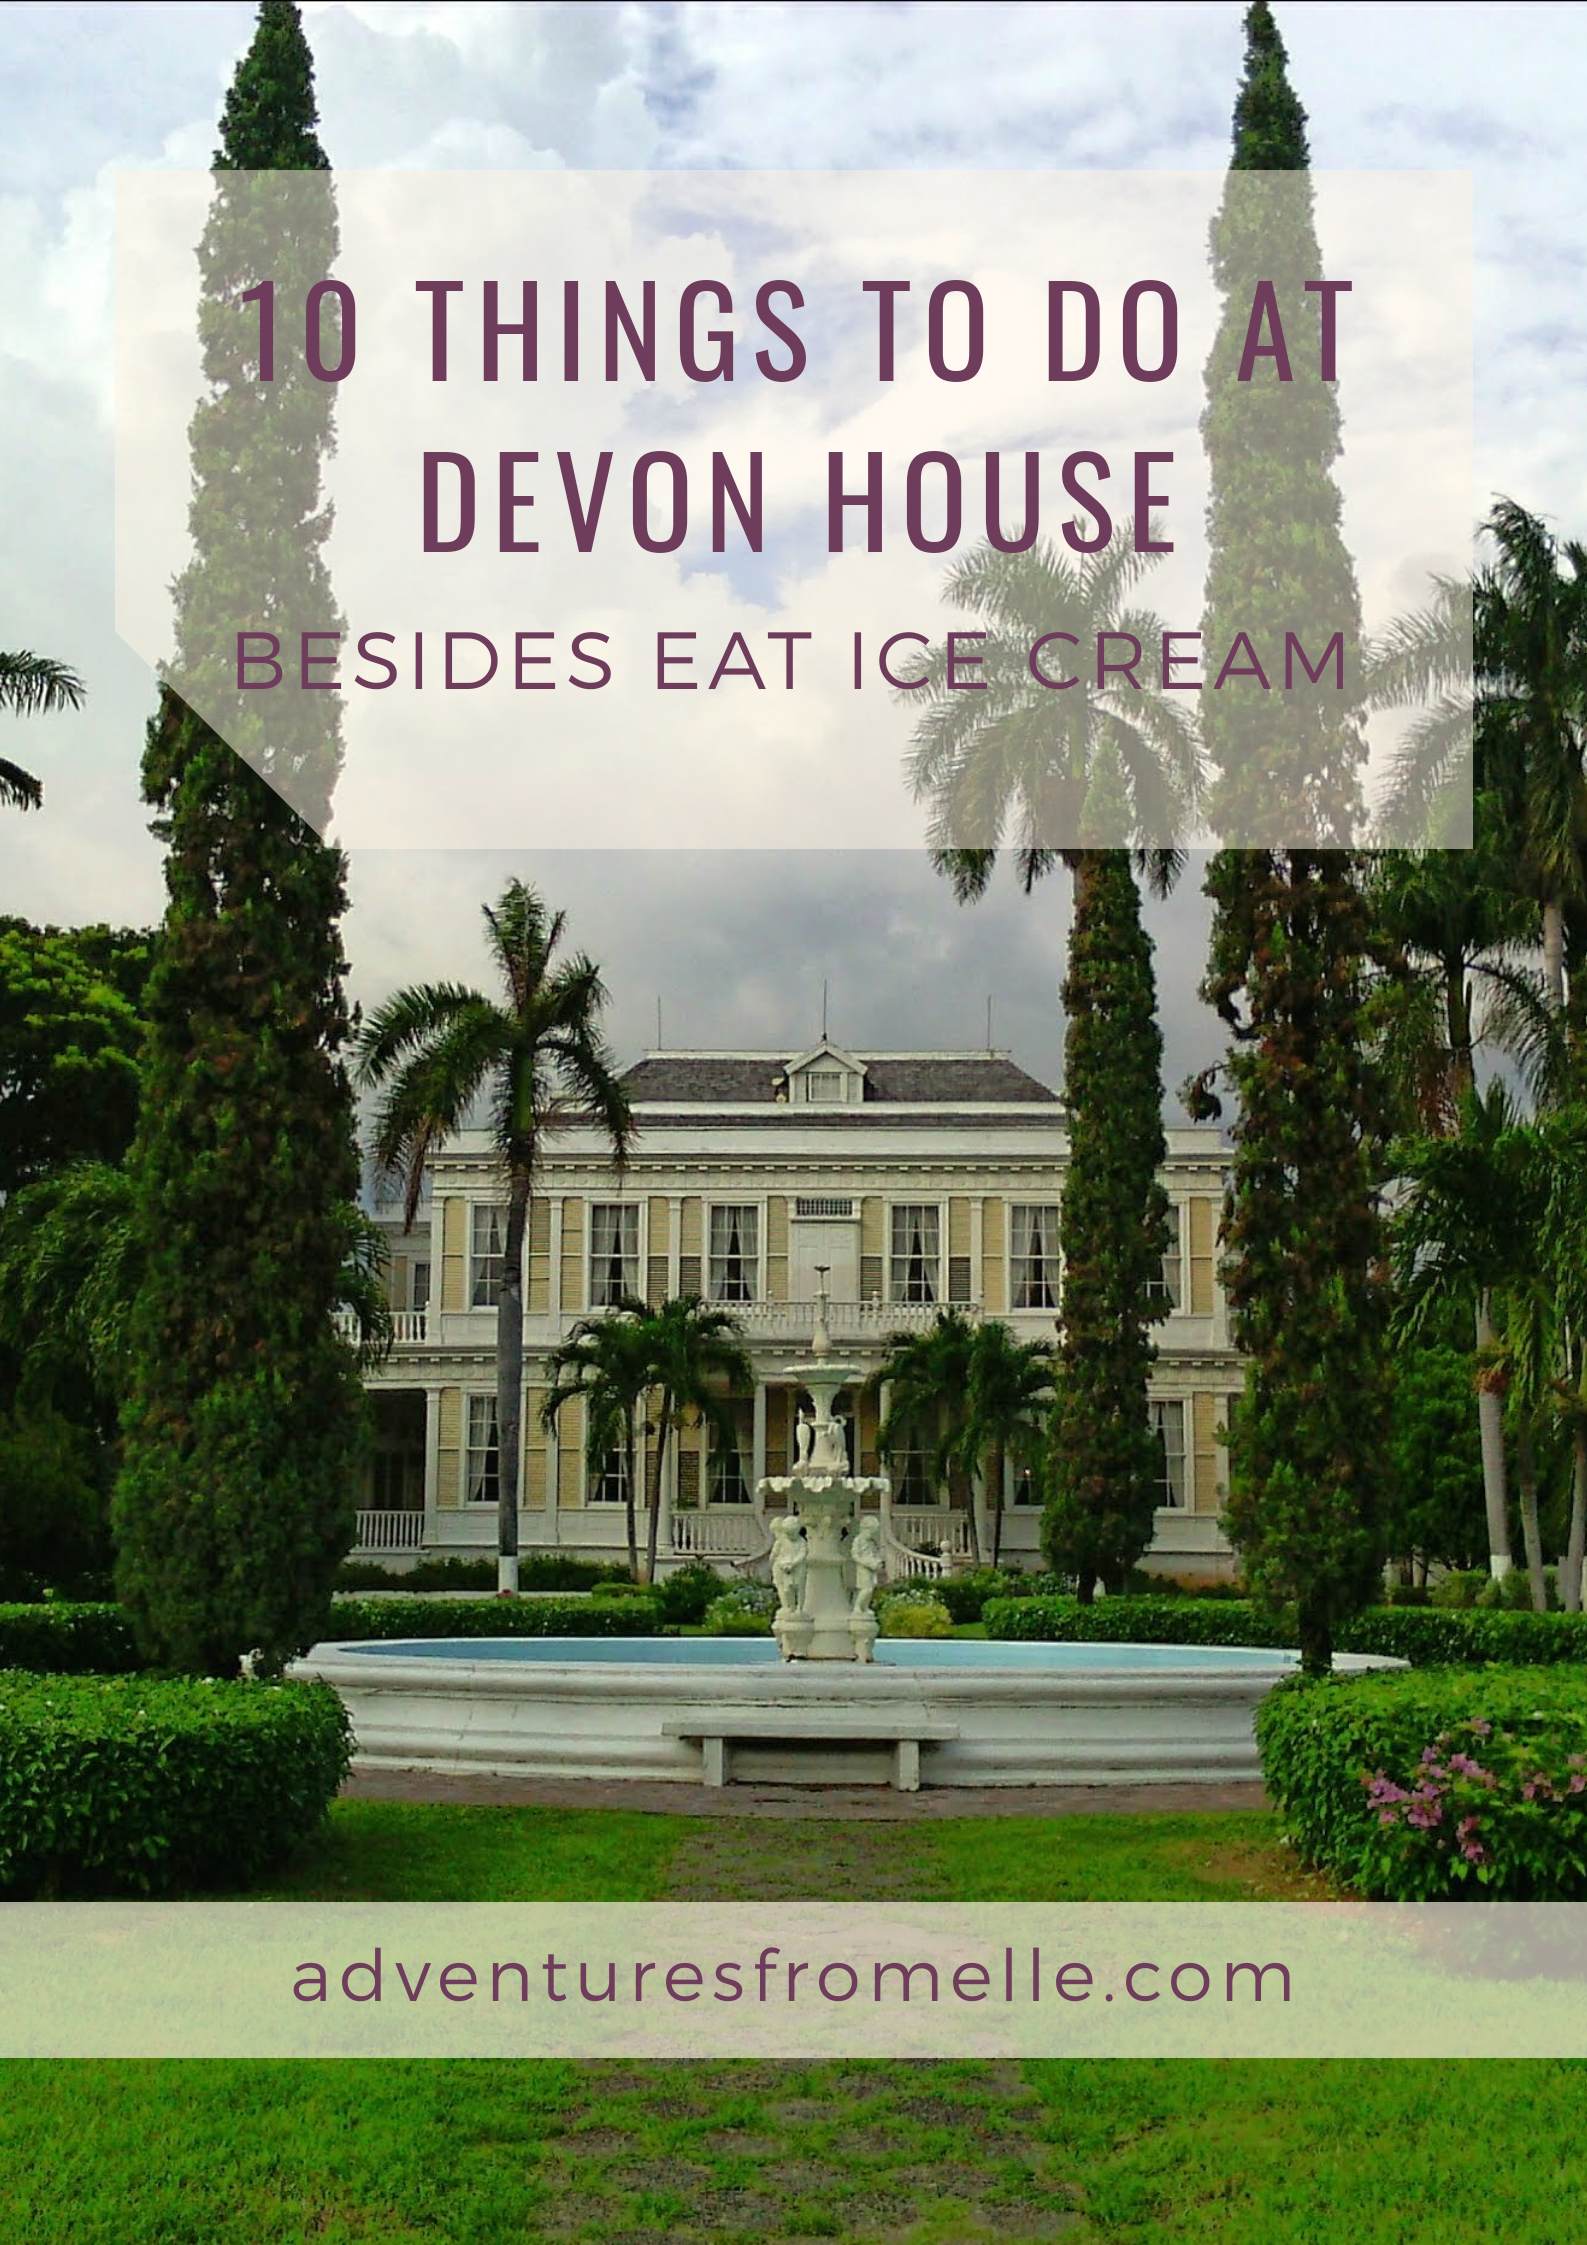 Ten things to do at Devon house